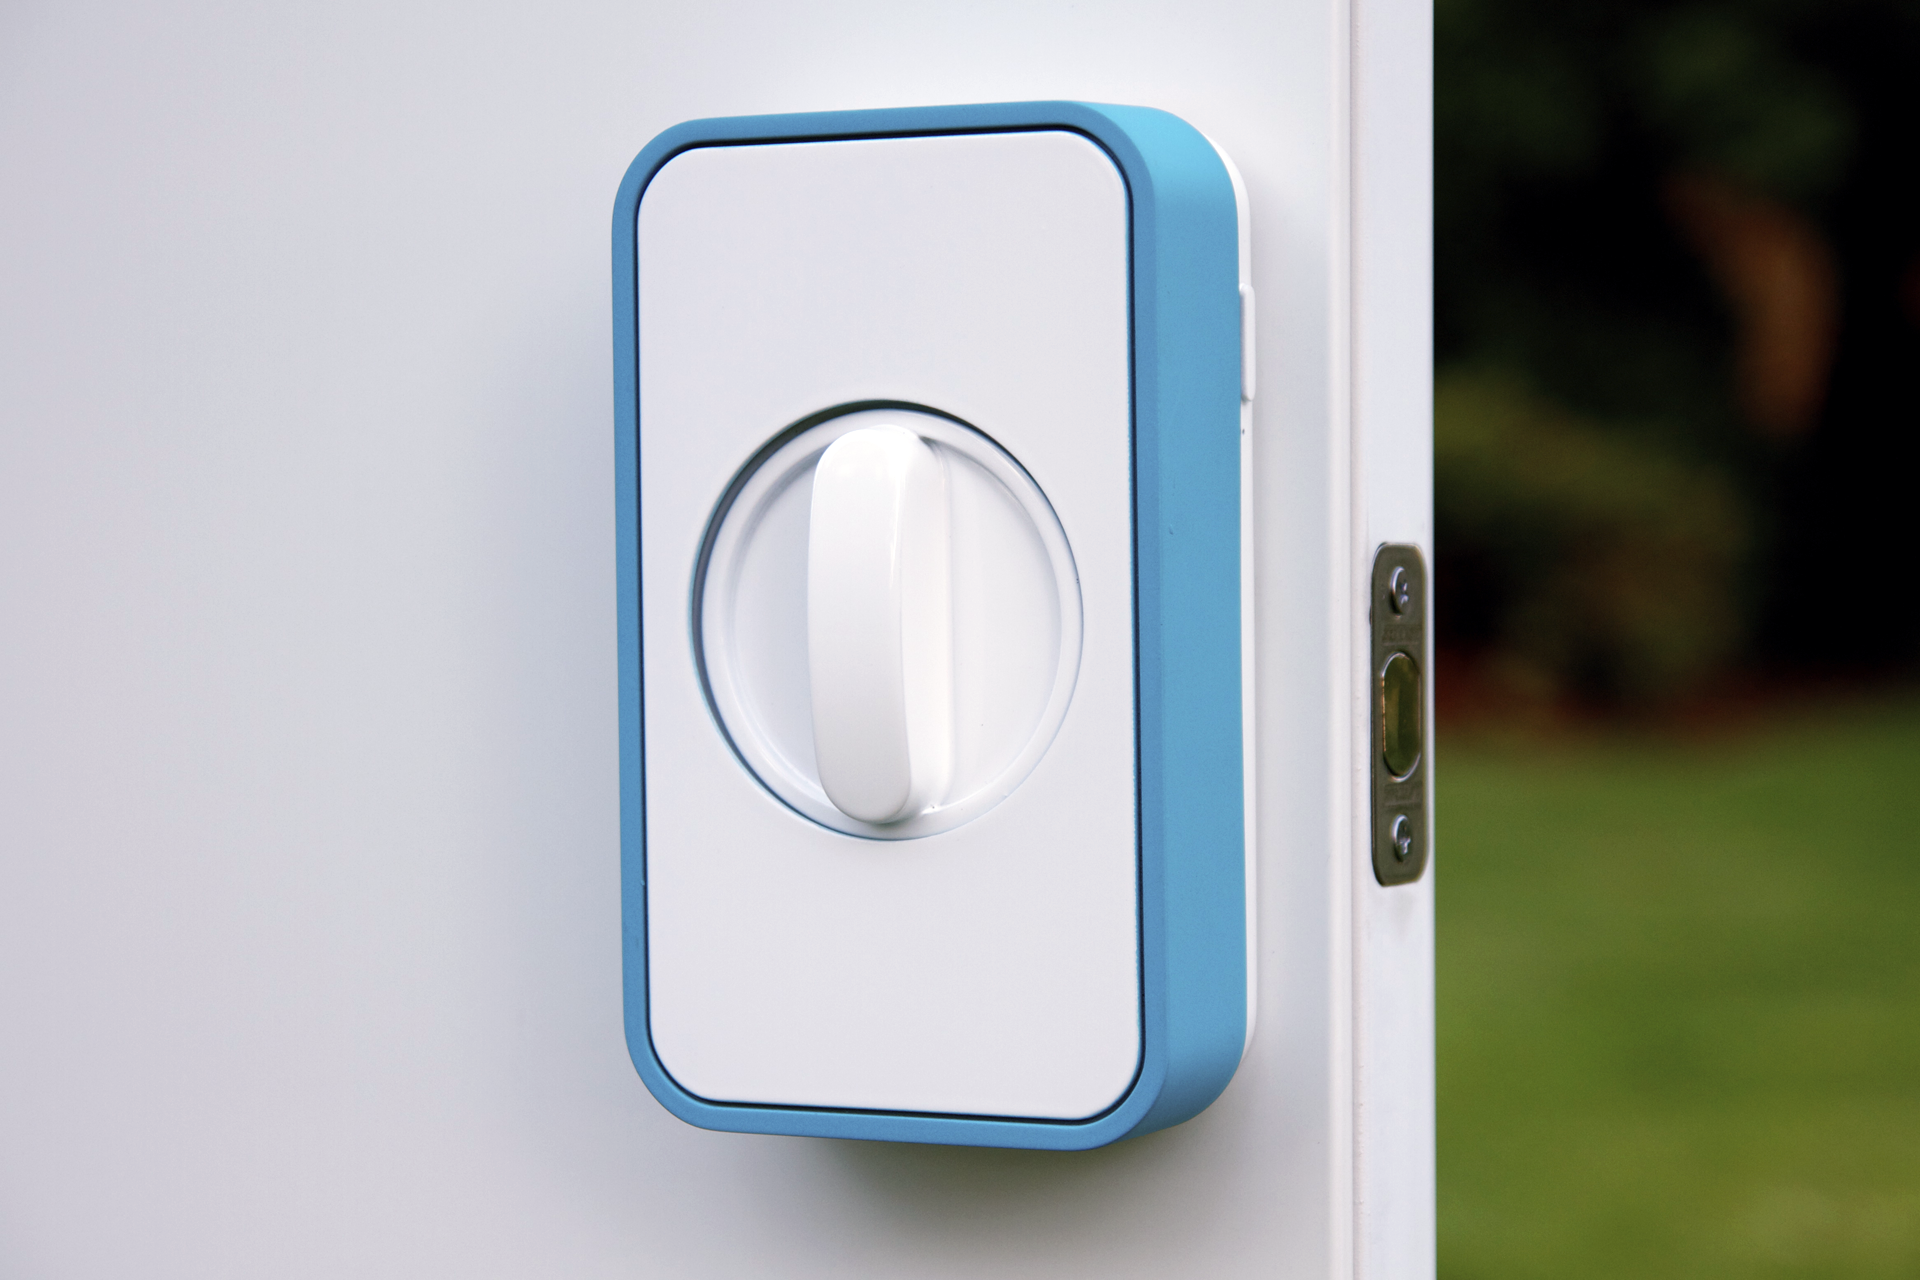 Testing: Life with a Smart Lock - Tested